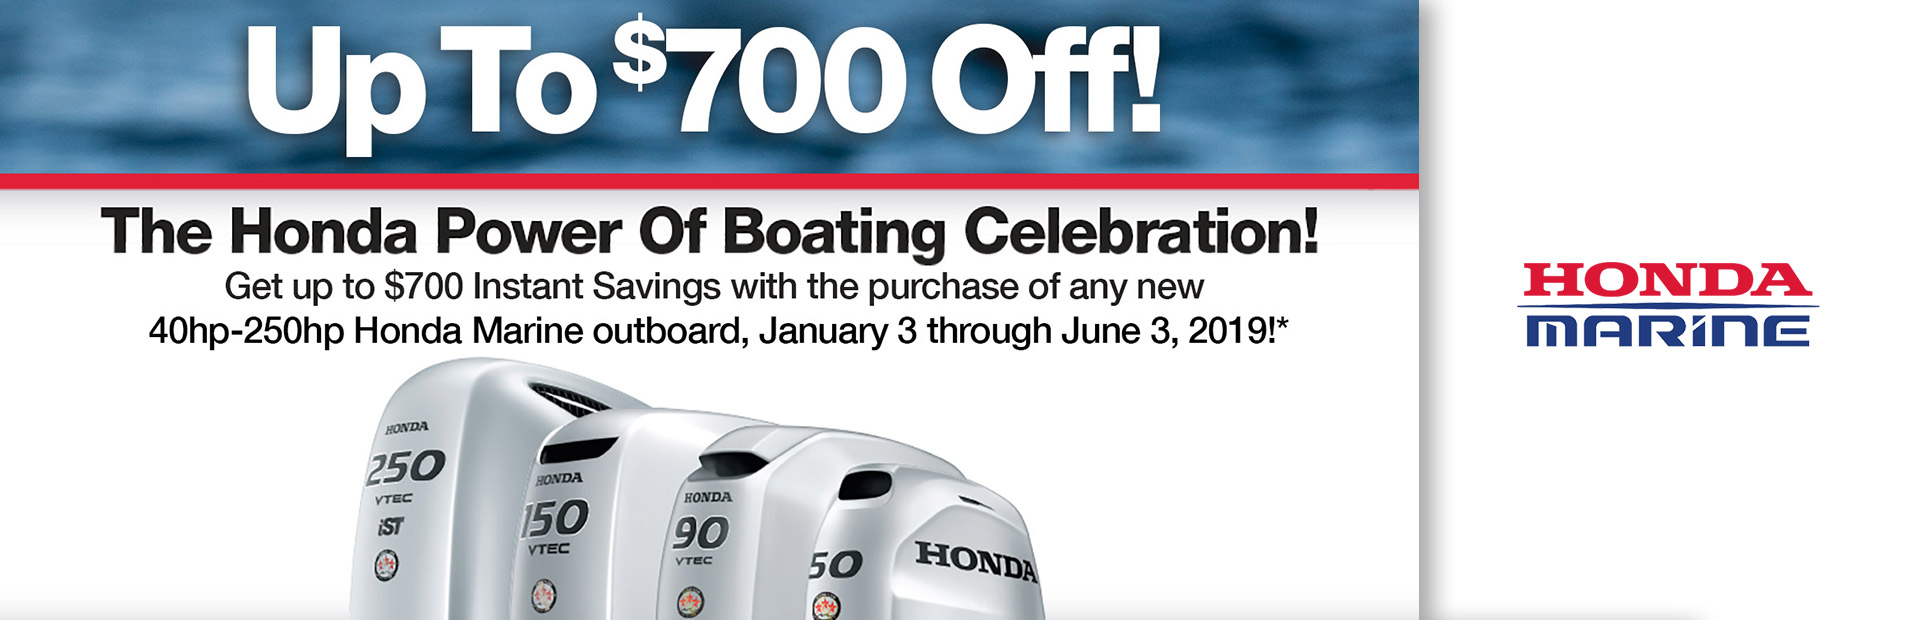 Honda Marine: Power of Boating Celebration